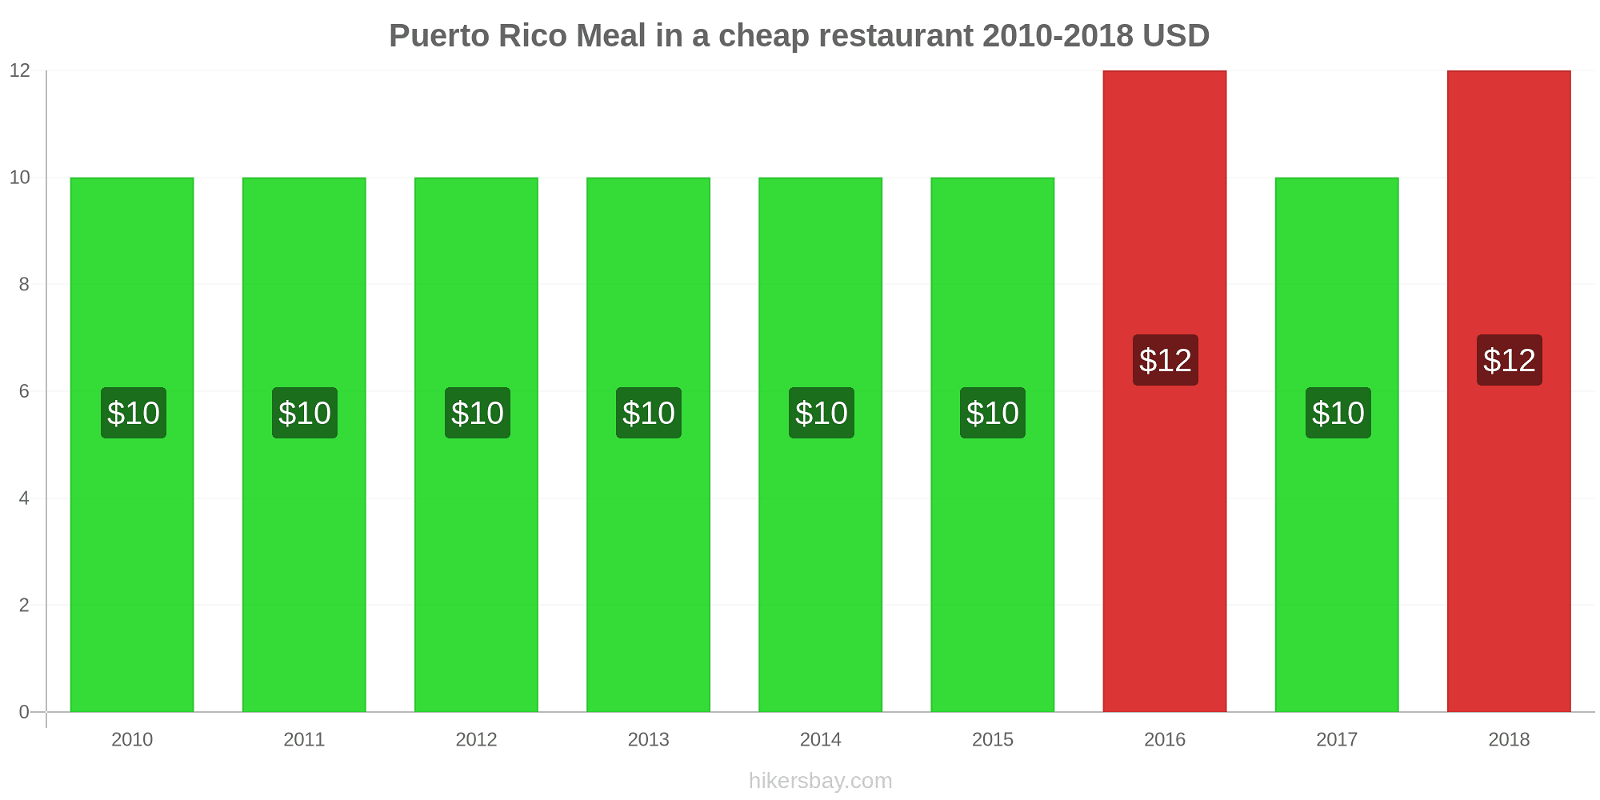 Puerto Rico price changes Meal in a cheap restaurant hikersbay.com